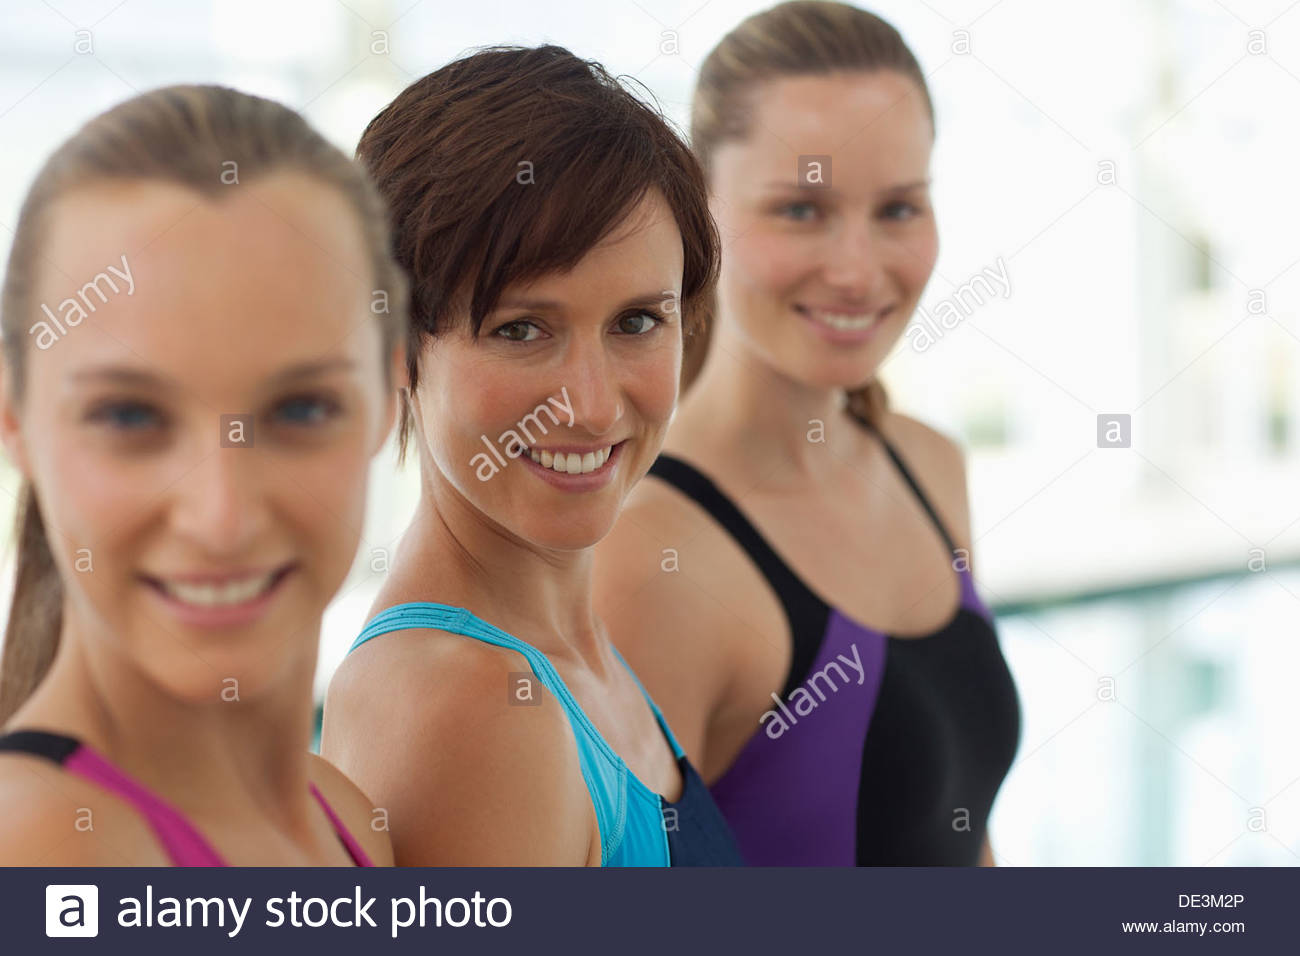 Portrait of smiling women in a row Photo Stock